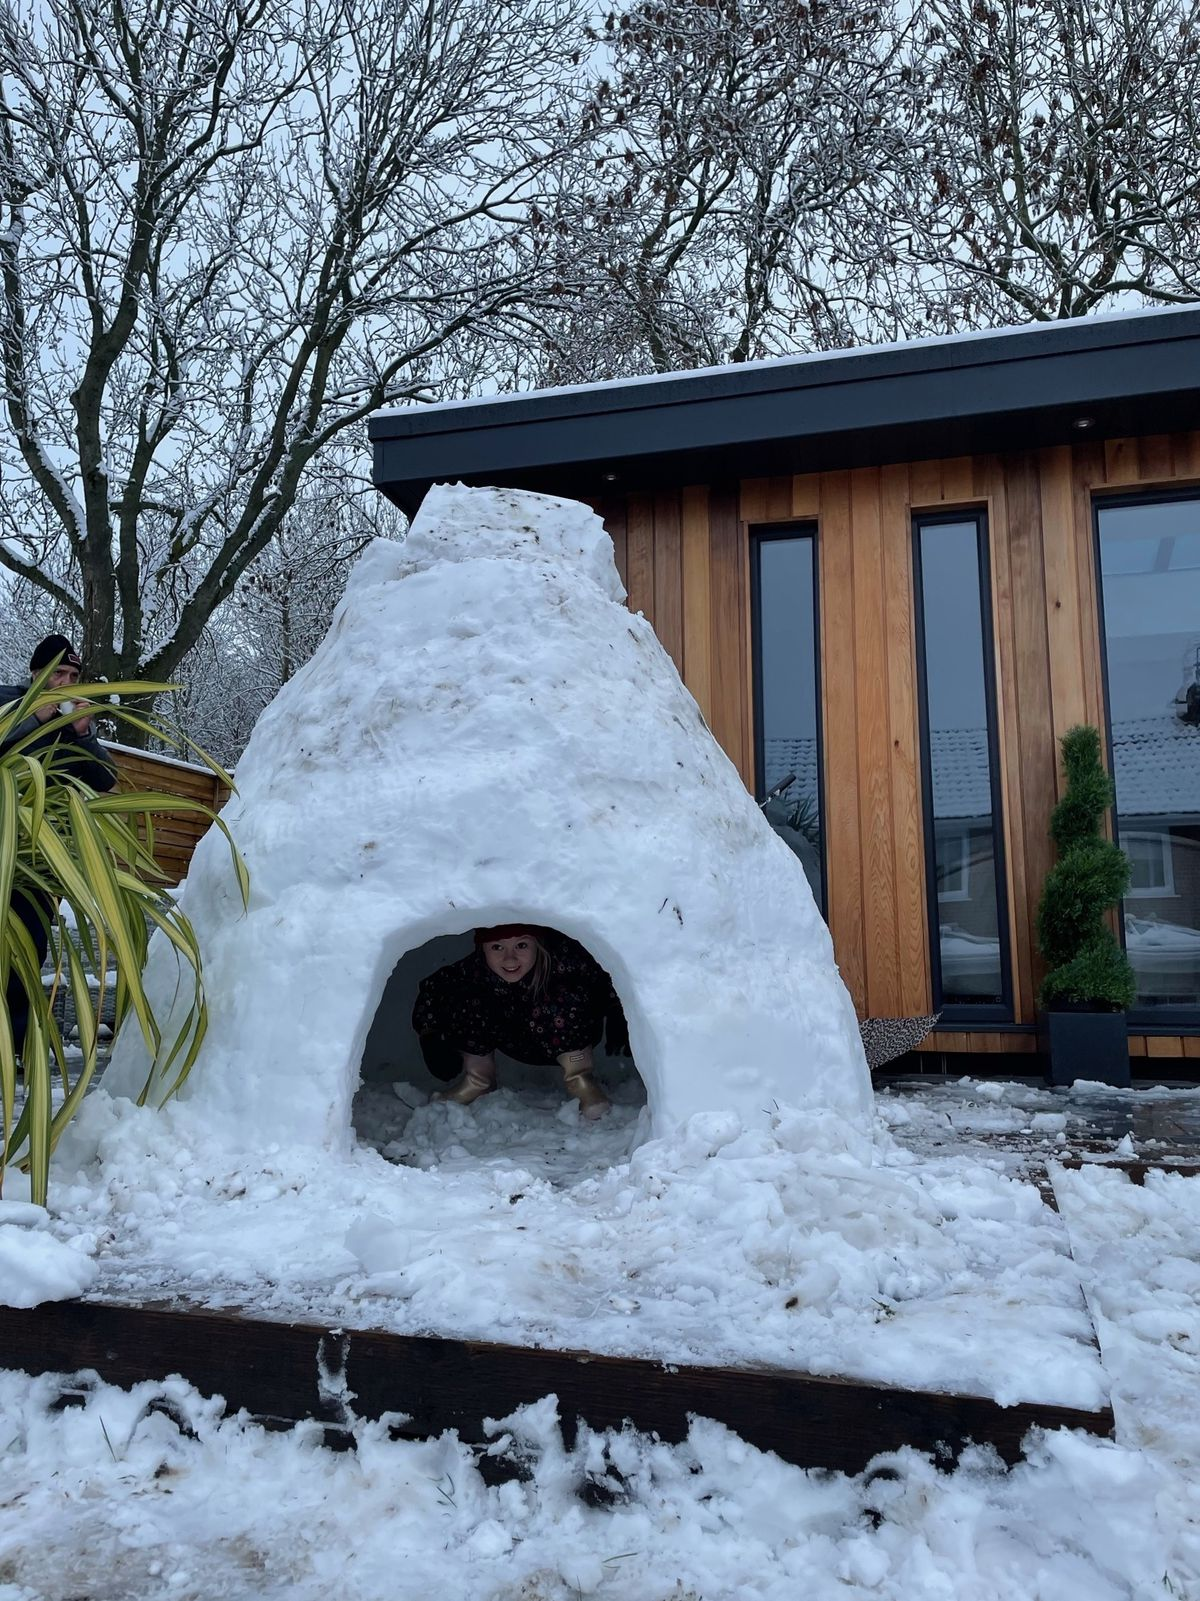 Kirsty Evans took this picture at her home in Westcroft in south Staffordshire of her daughter inside a giant igloo